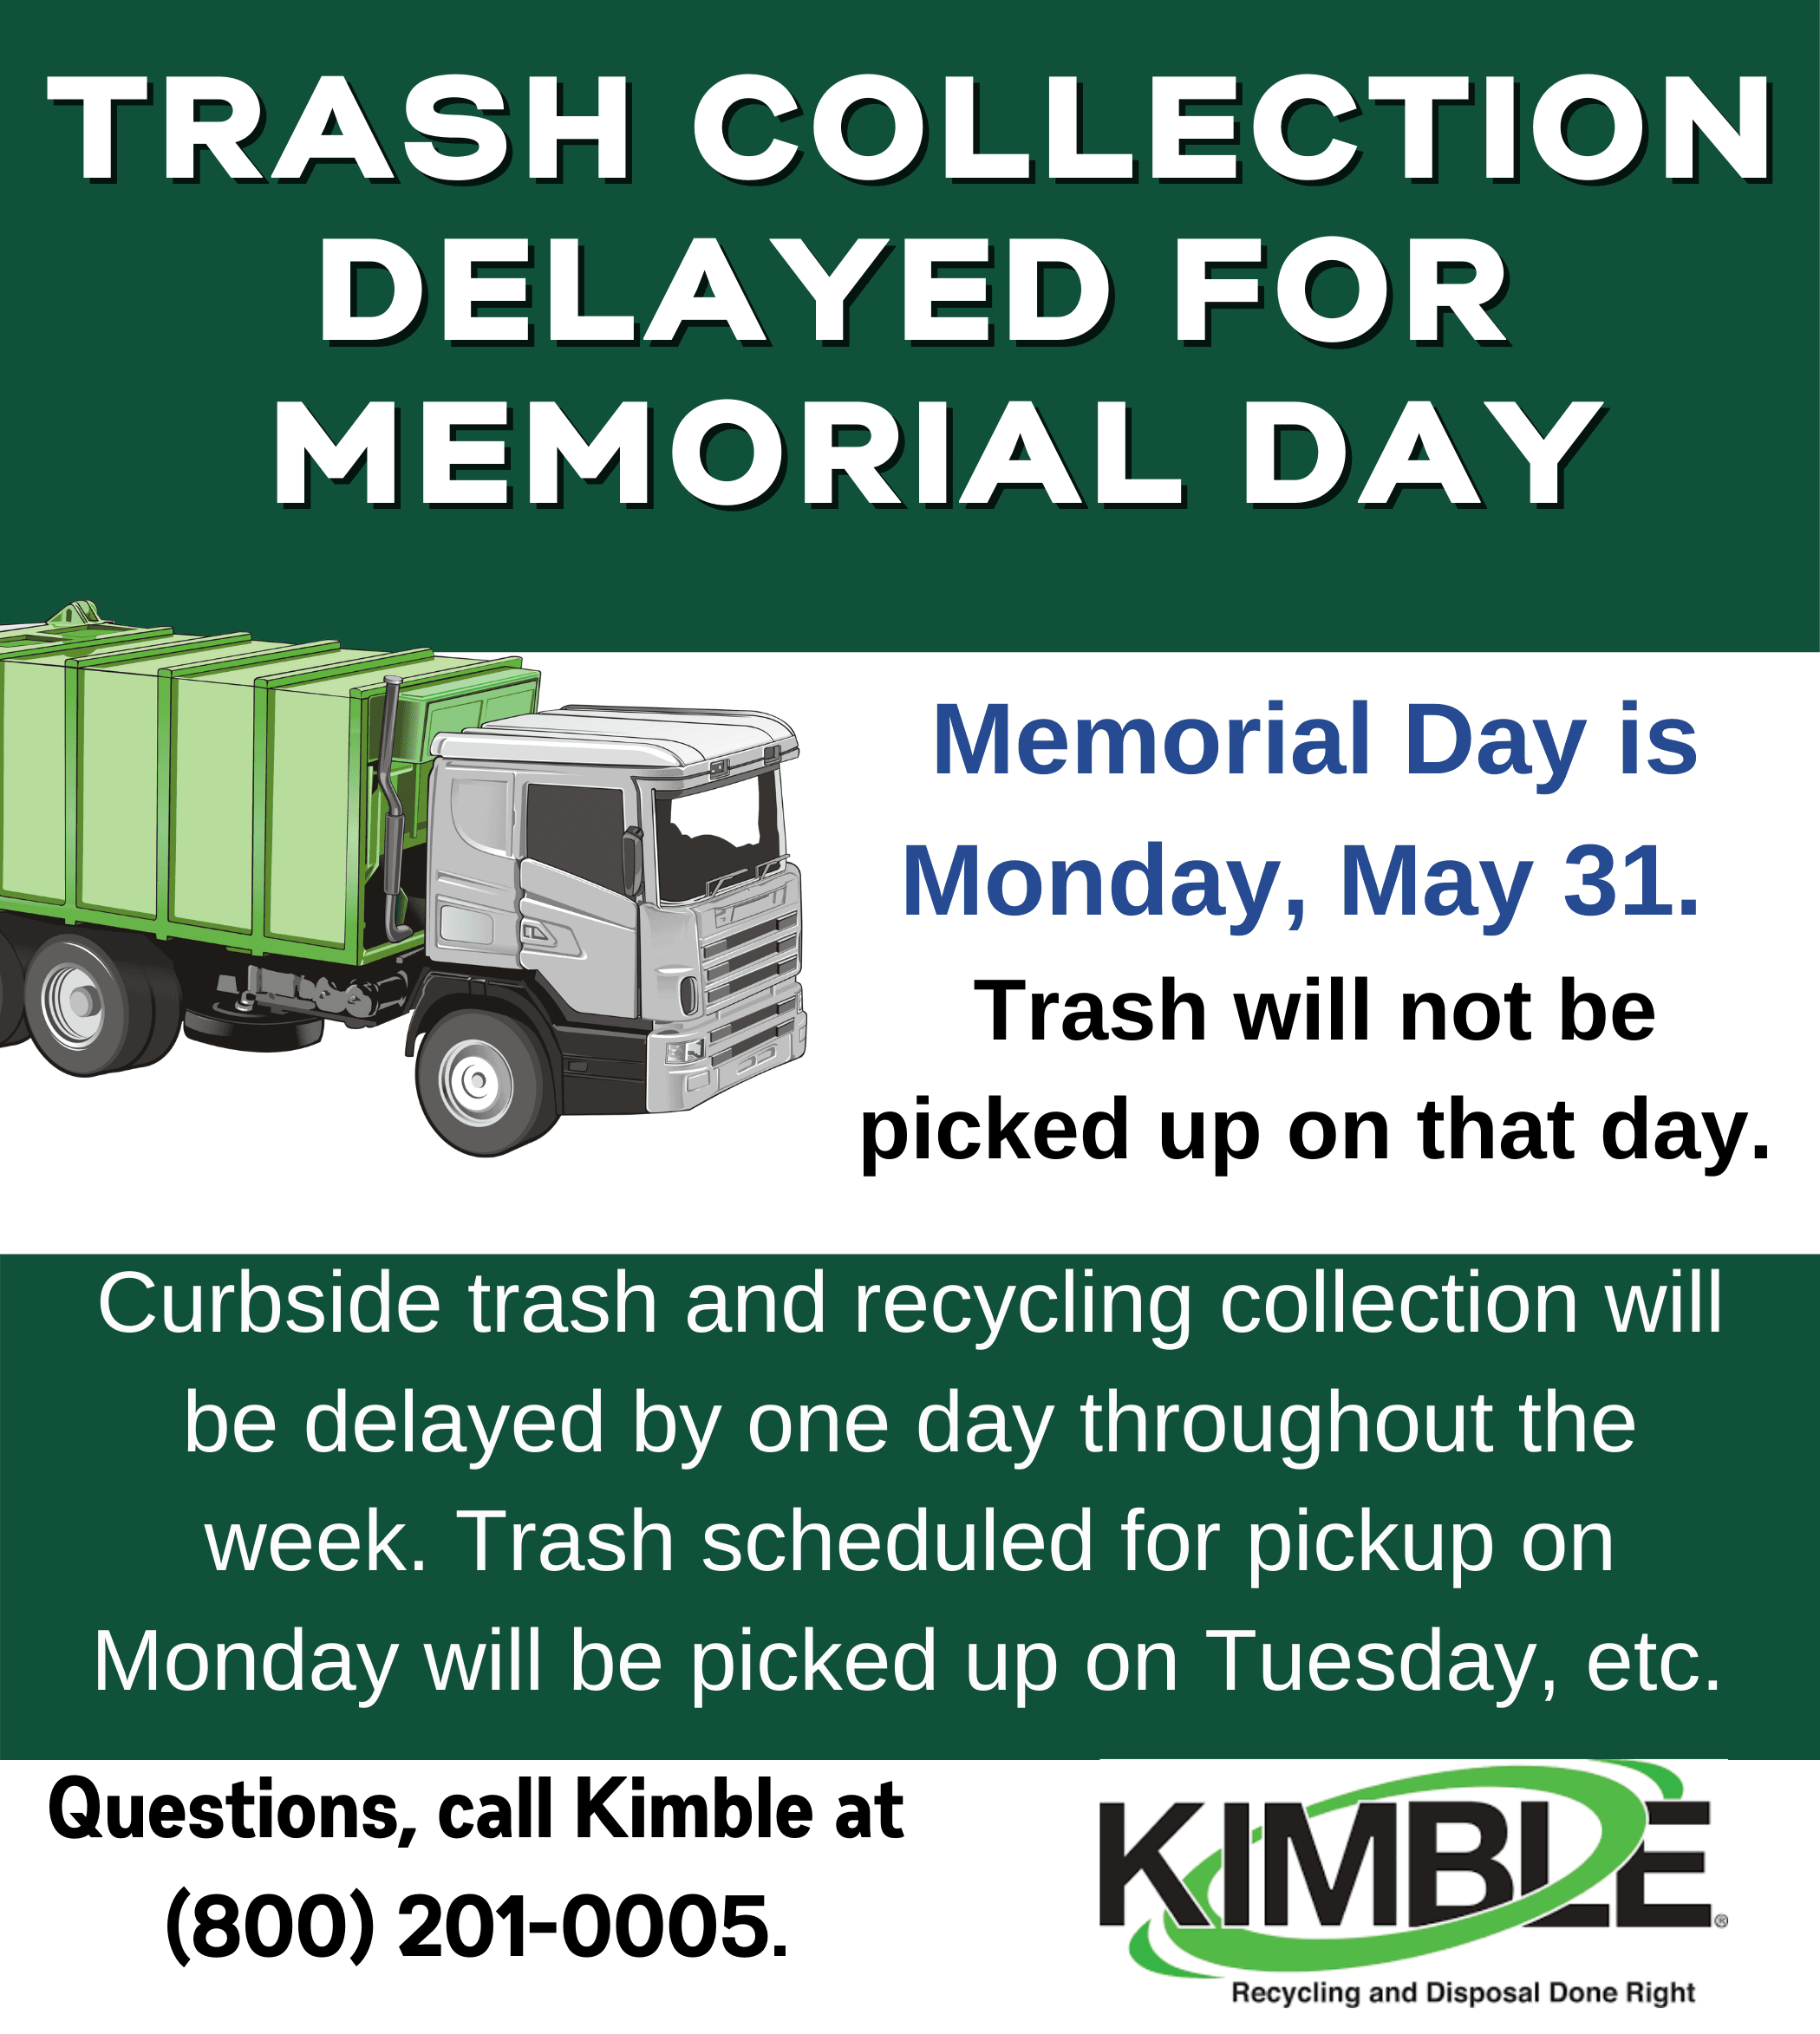 Trash collection delayed memorial day